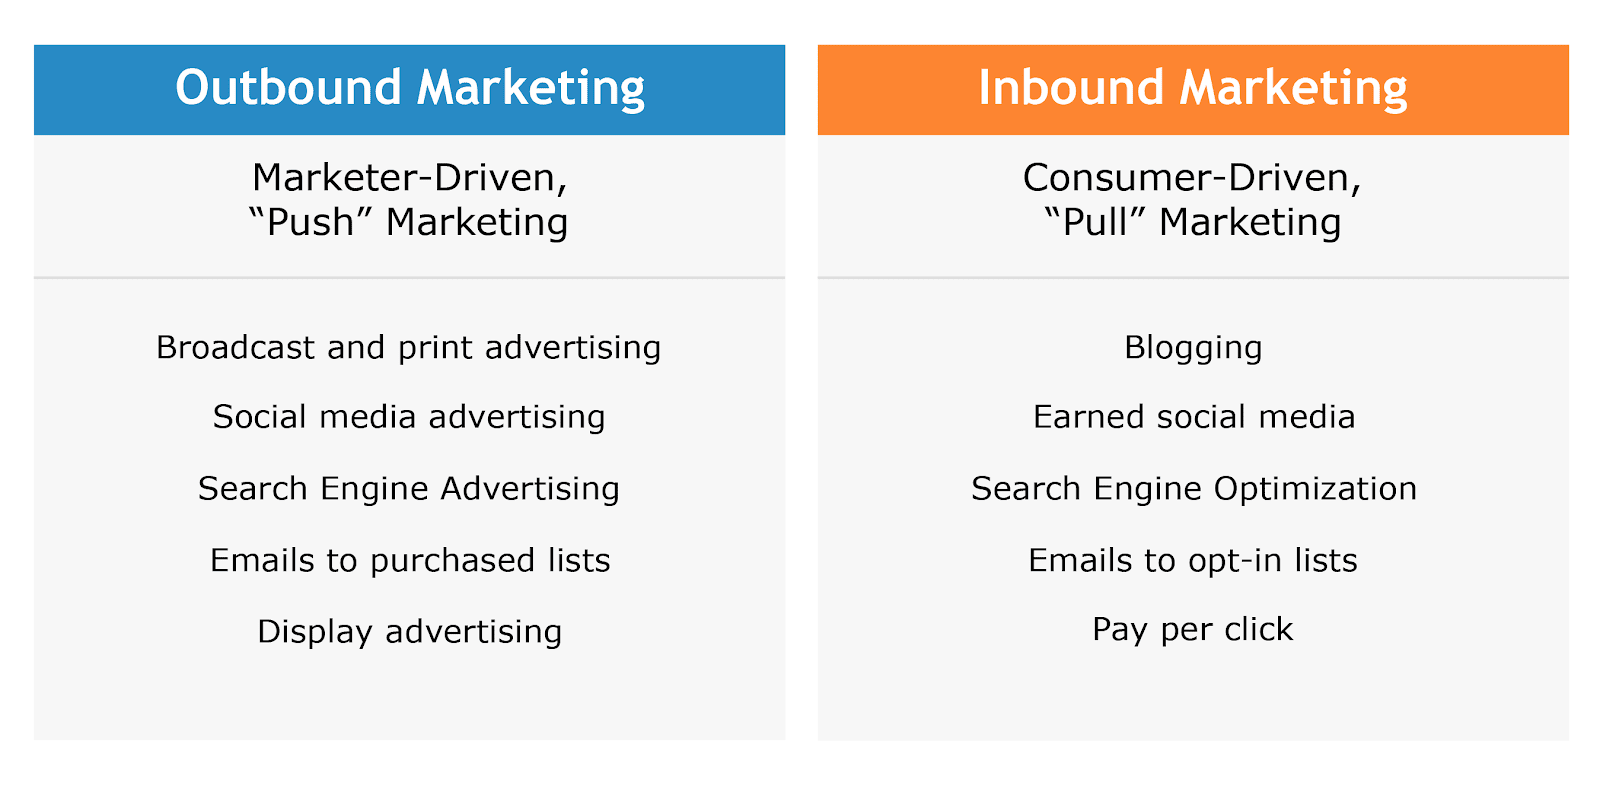 inbound lead generation - outbound and inbound marketing comparison